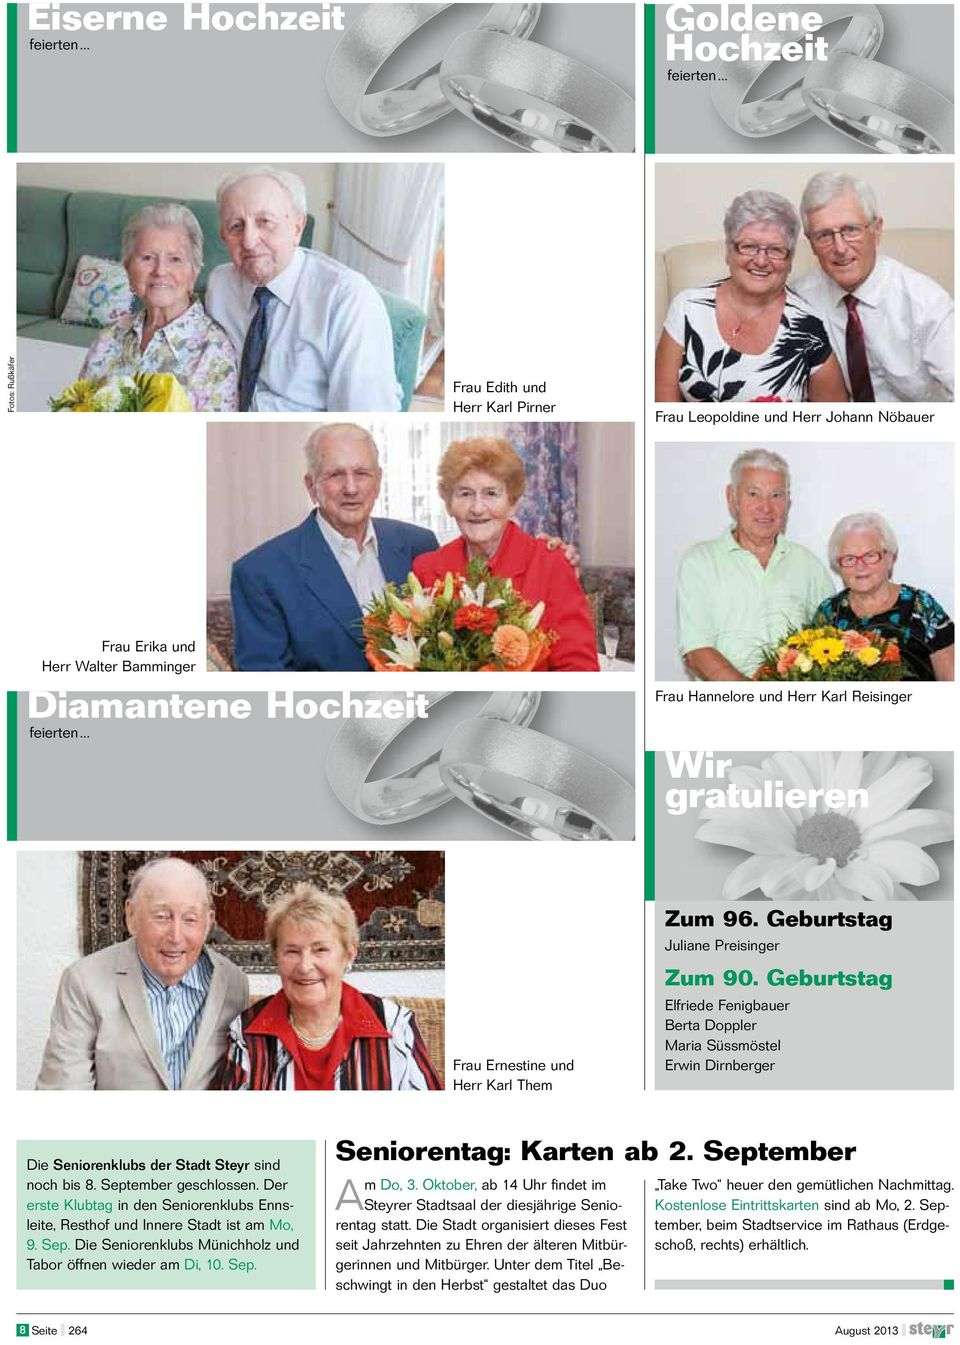 steyr senior personals The website of the international tennis federation, the world governing body of tennis - information on all aspects of tennis including players, records, rules and events such as davis cup and fed cup.